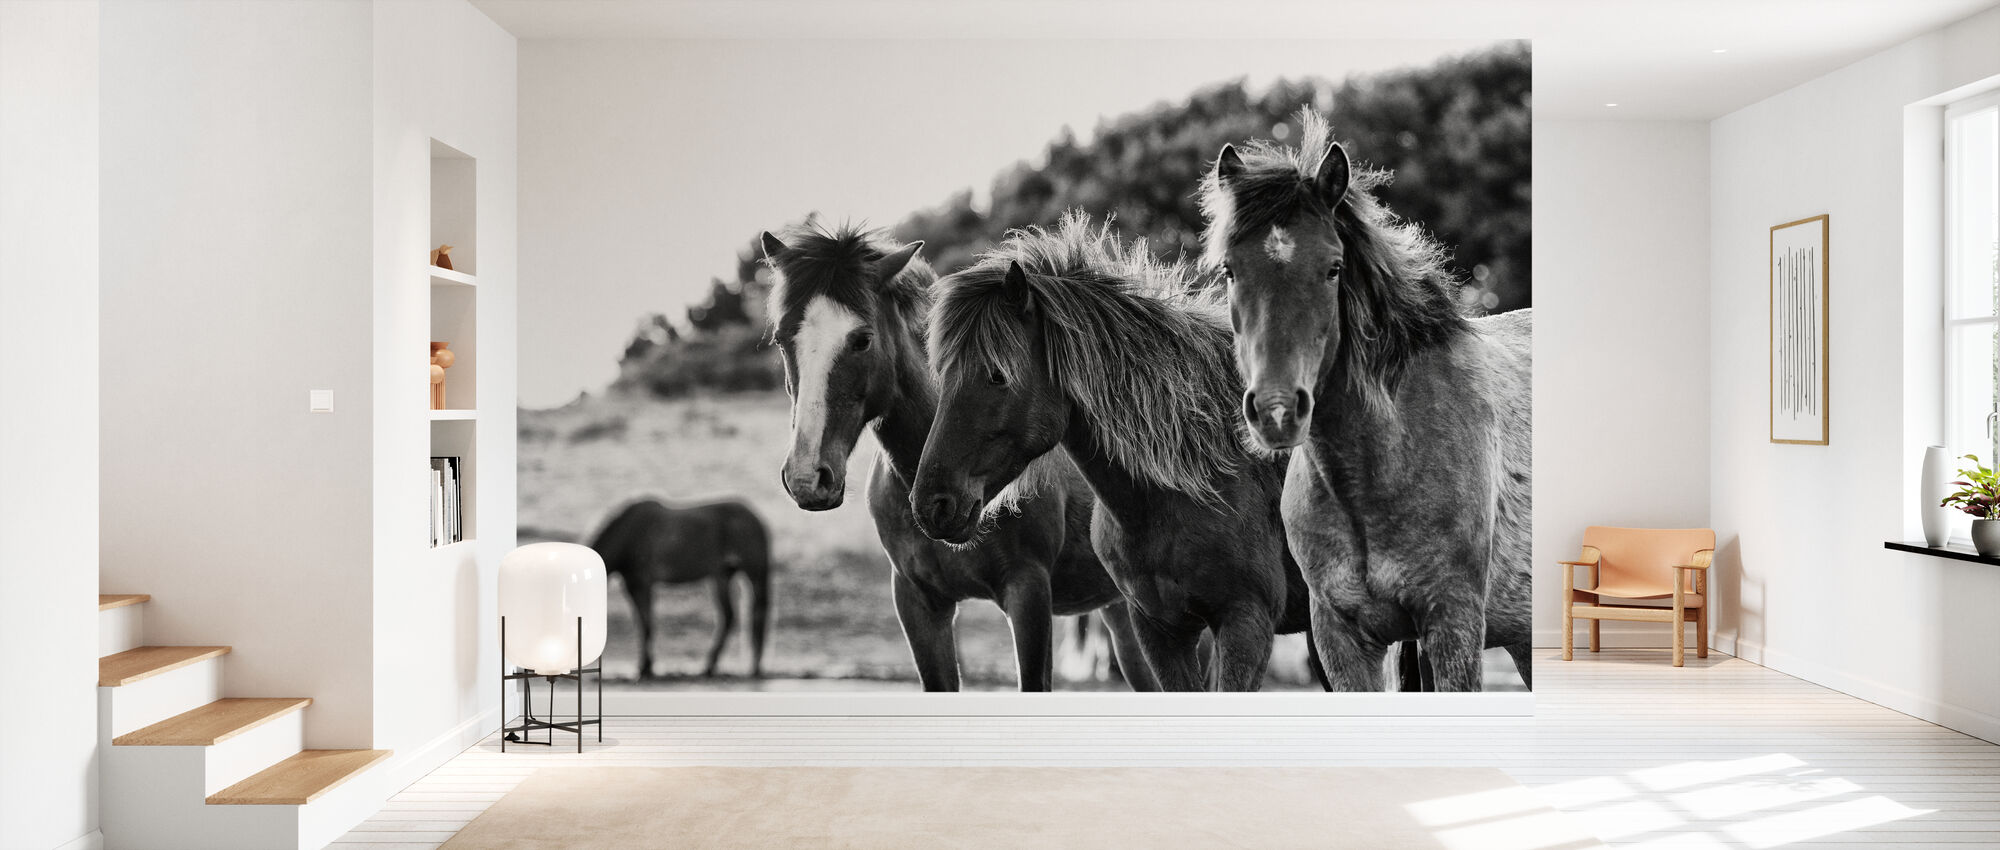 Horses Three - Wallpaper - Hallway